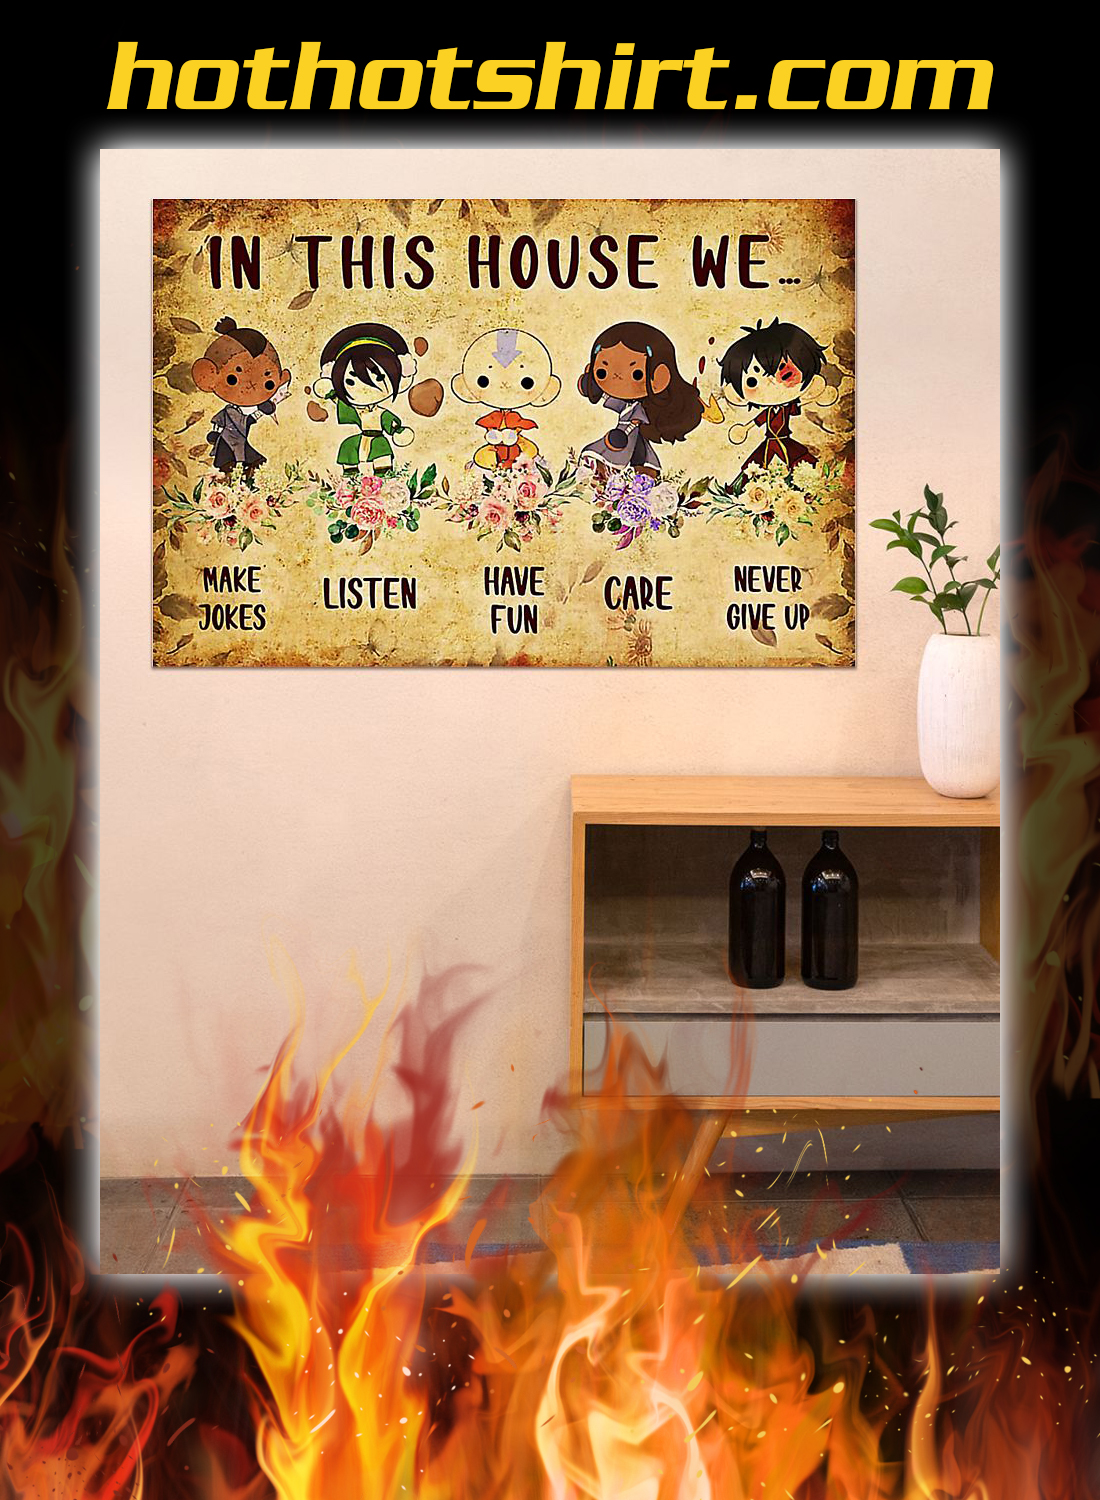 Last airbender in this house we poster 3